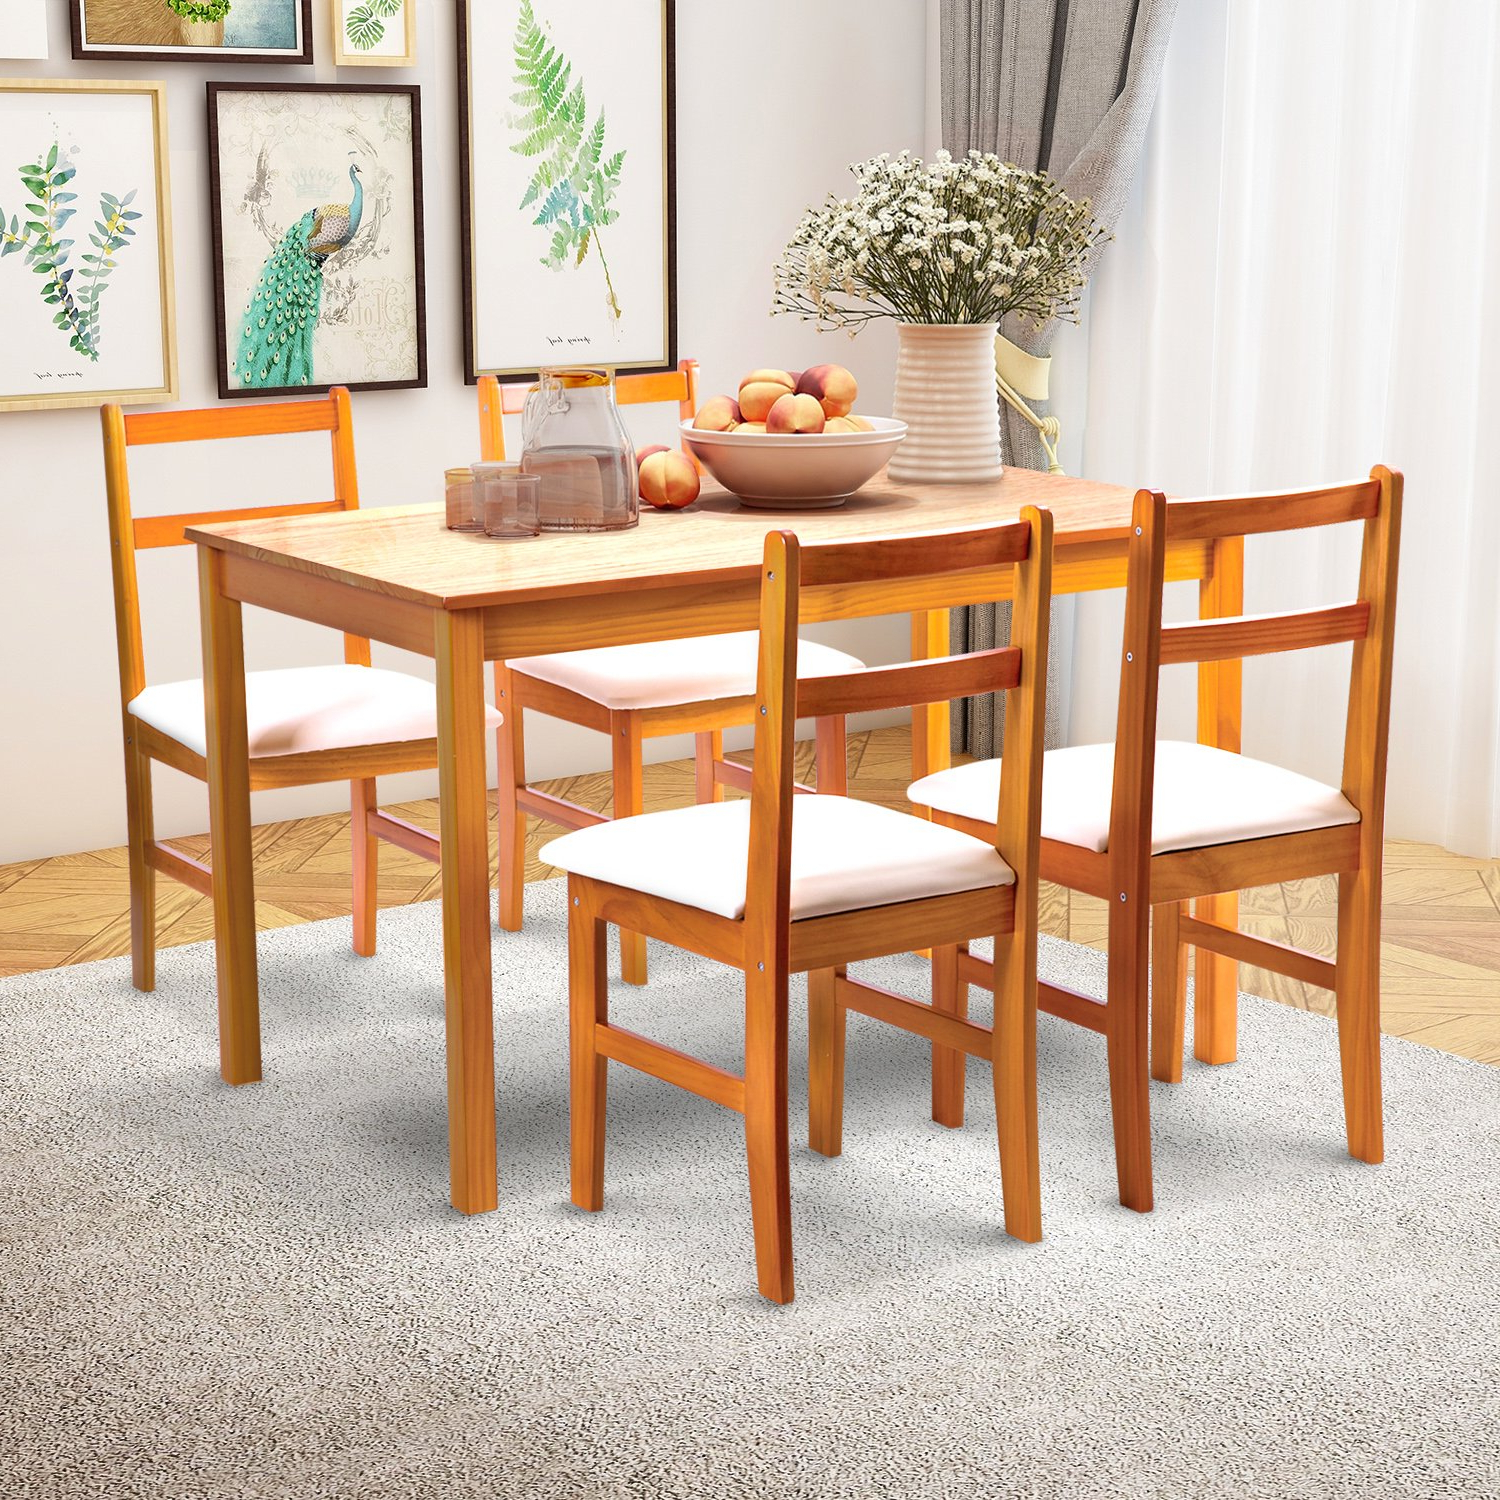 Well Known Mid Century Rectangular Top Dining Tables With Wood Legs Pertaining To Furniture Giantex Modern Dining Table Mid Century Home (View 15 of 25)